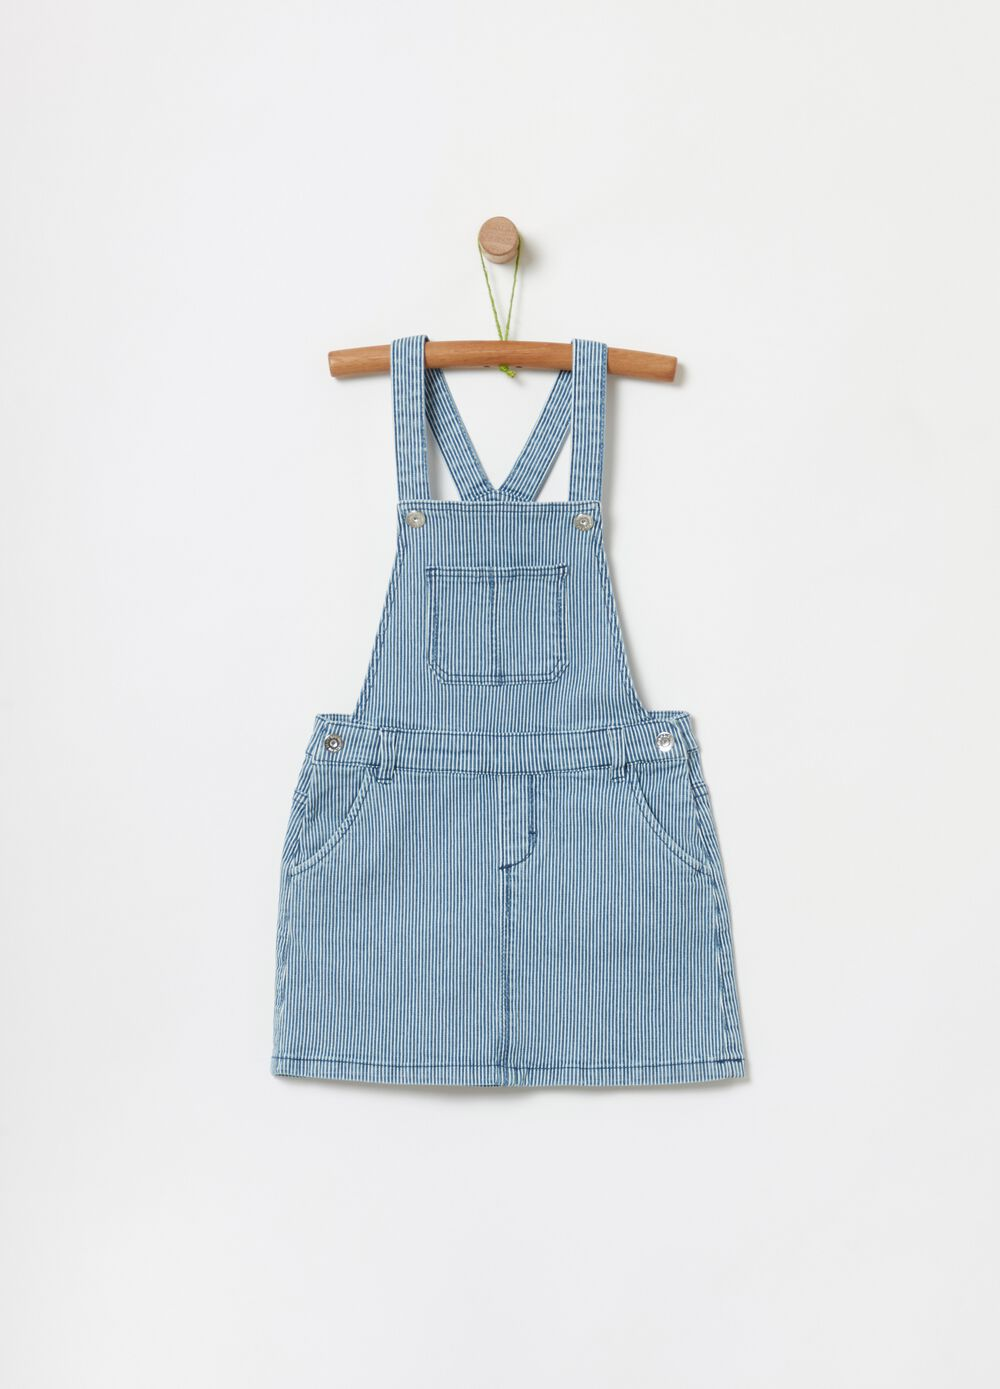 Dungarees with striped pockets